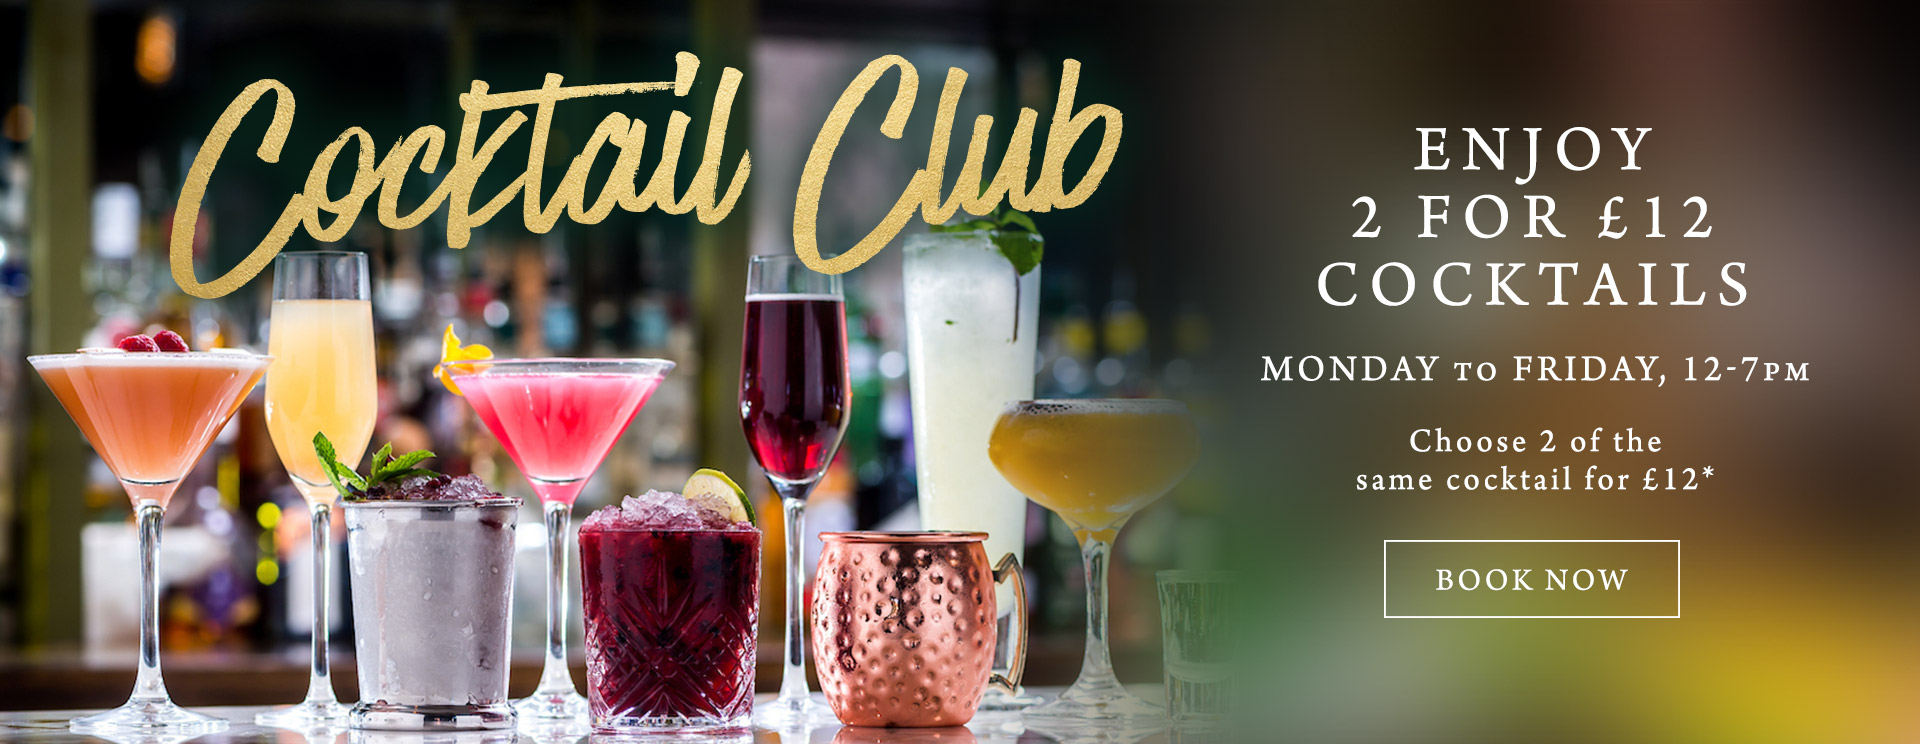 2 for £12 cocktails at The Encore